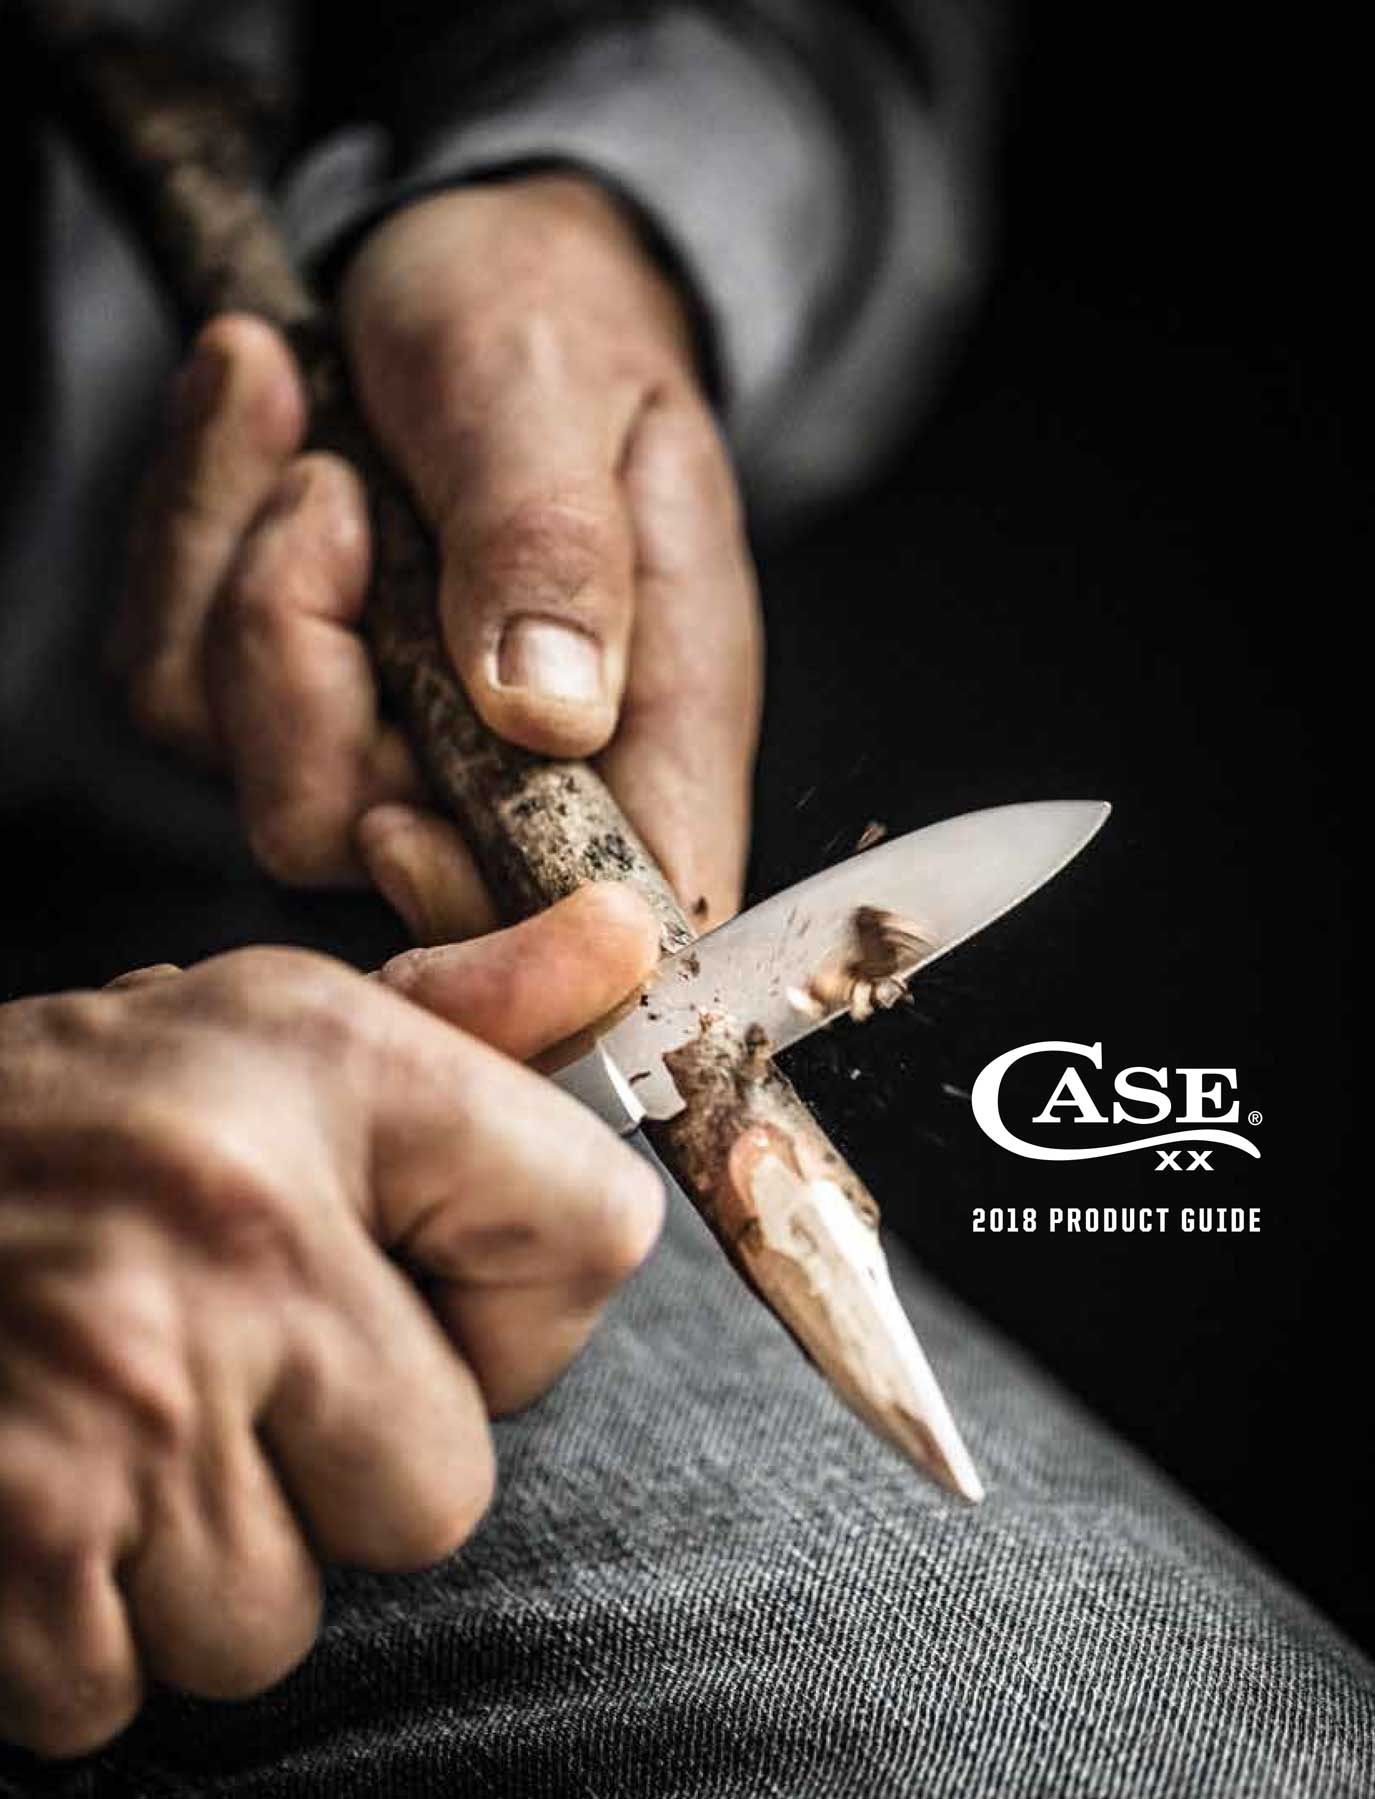 Jody Horton Photography - Ad for Case Knives, small knife sharpening a wood stick.